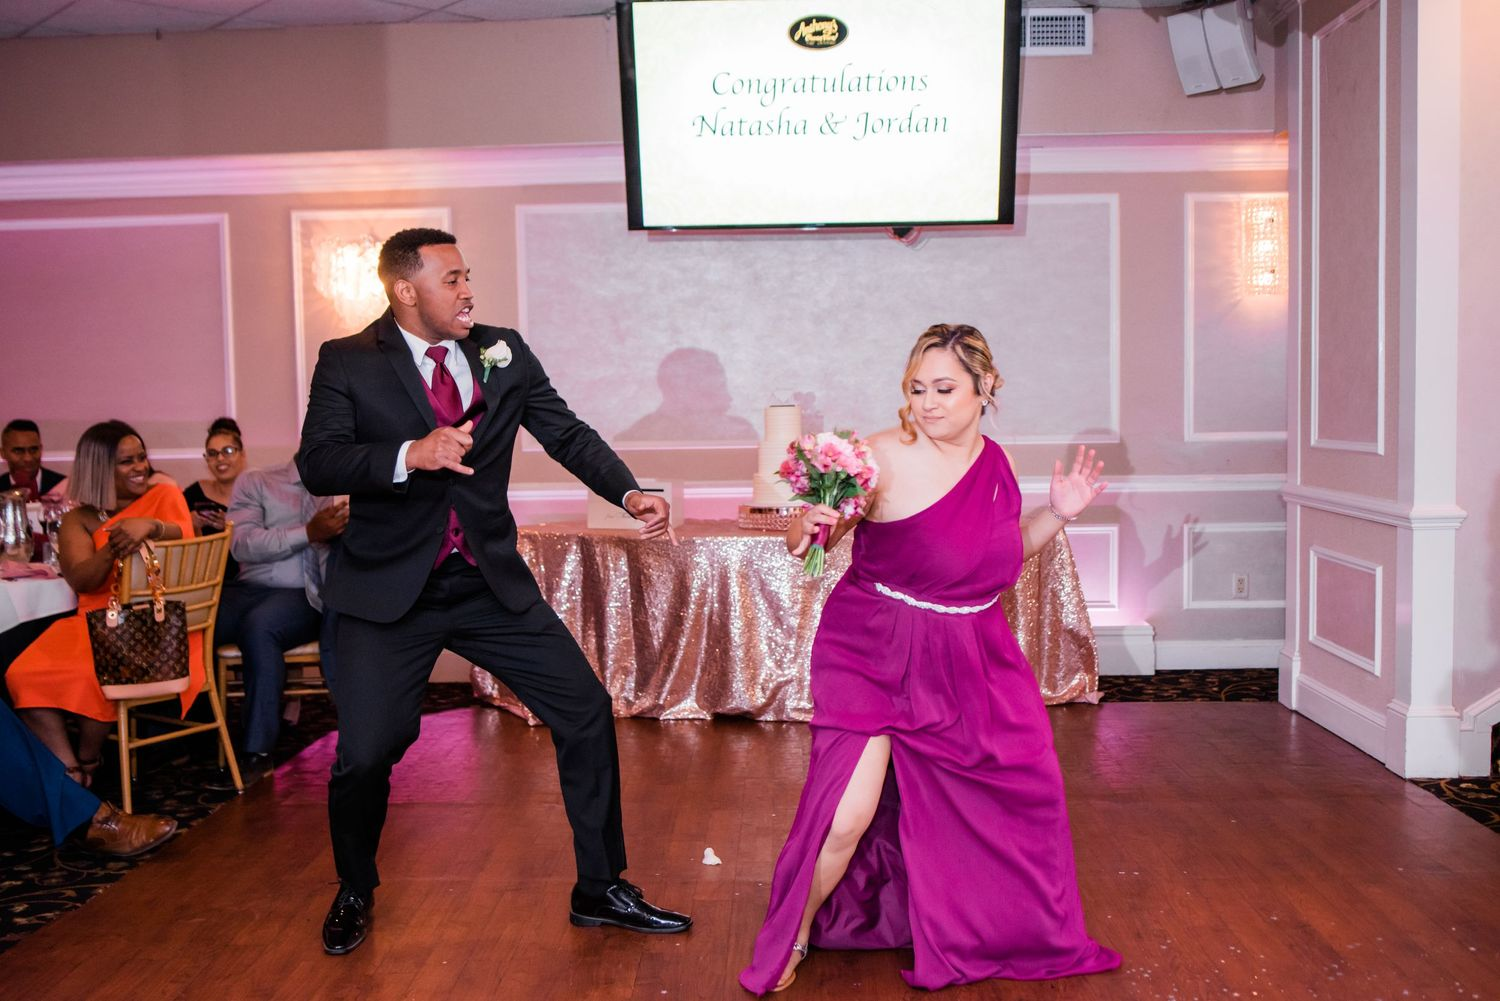 groomsmen and bridesmaid dancing in reception